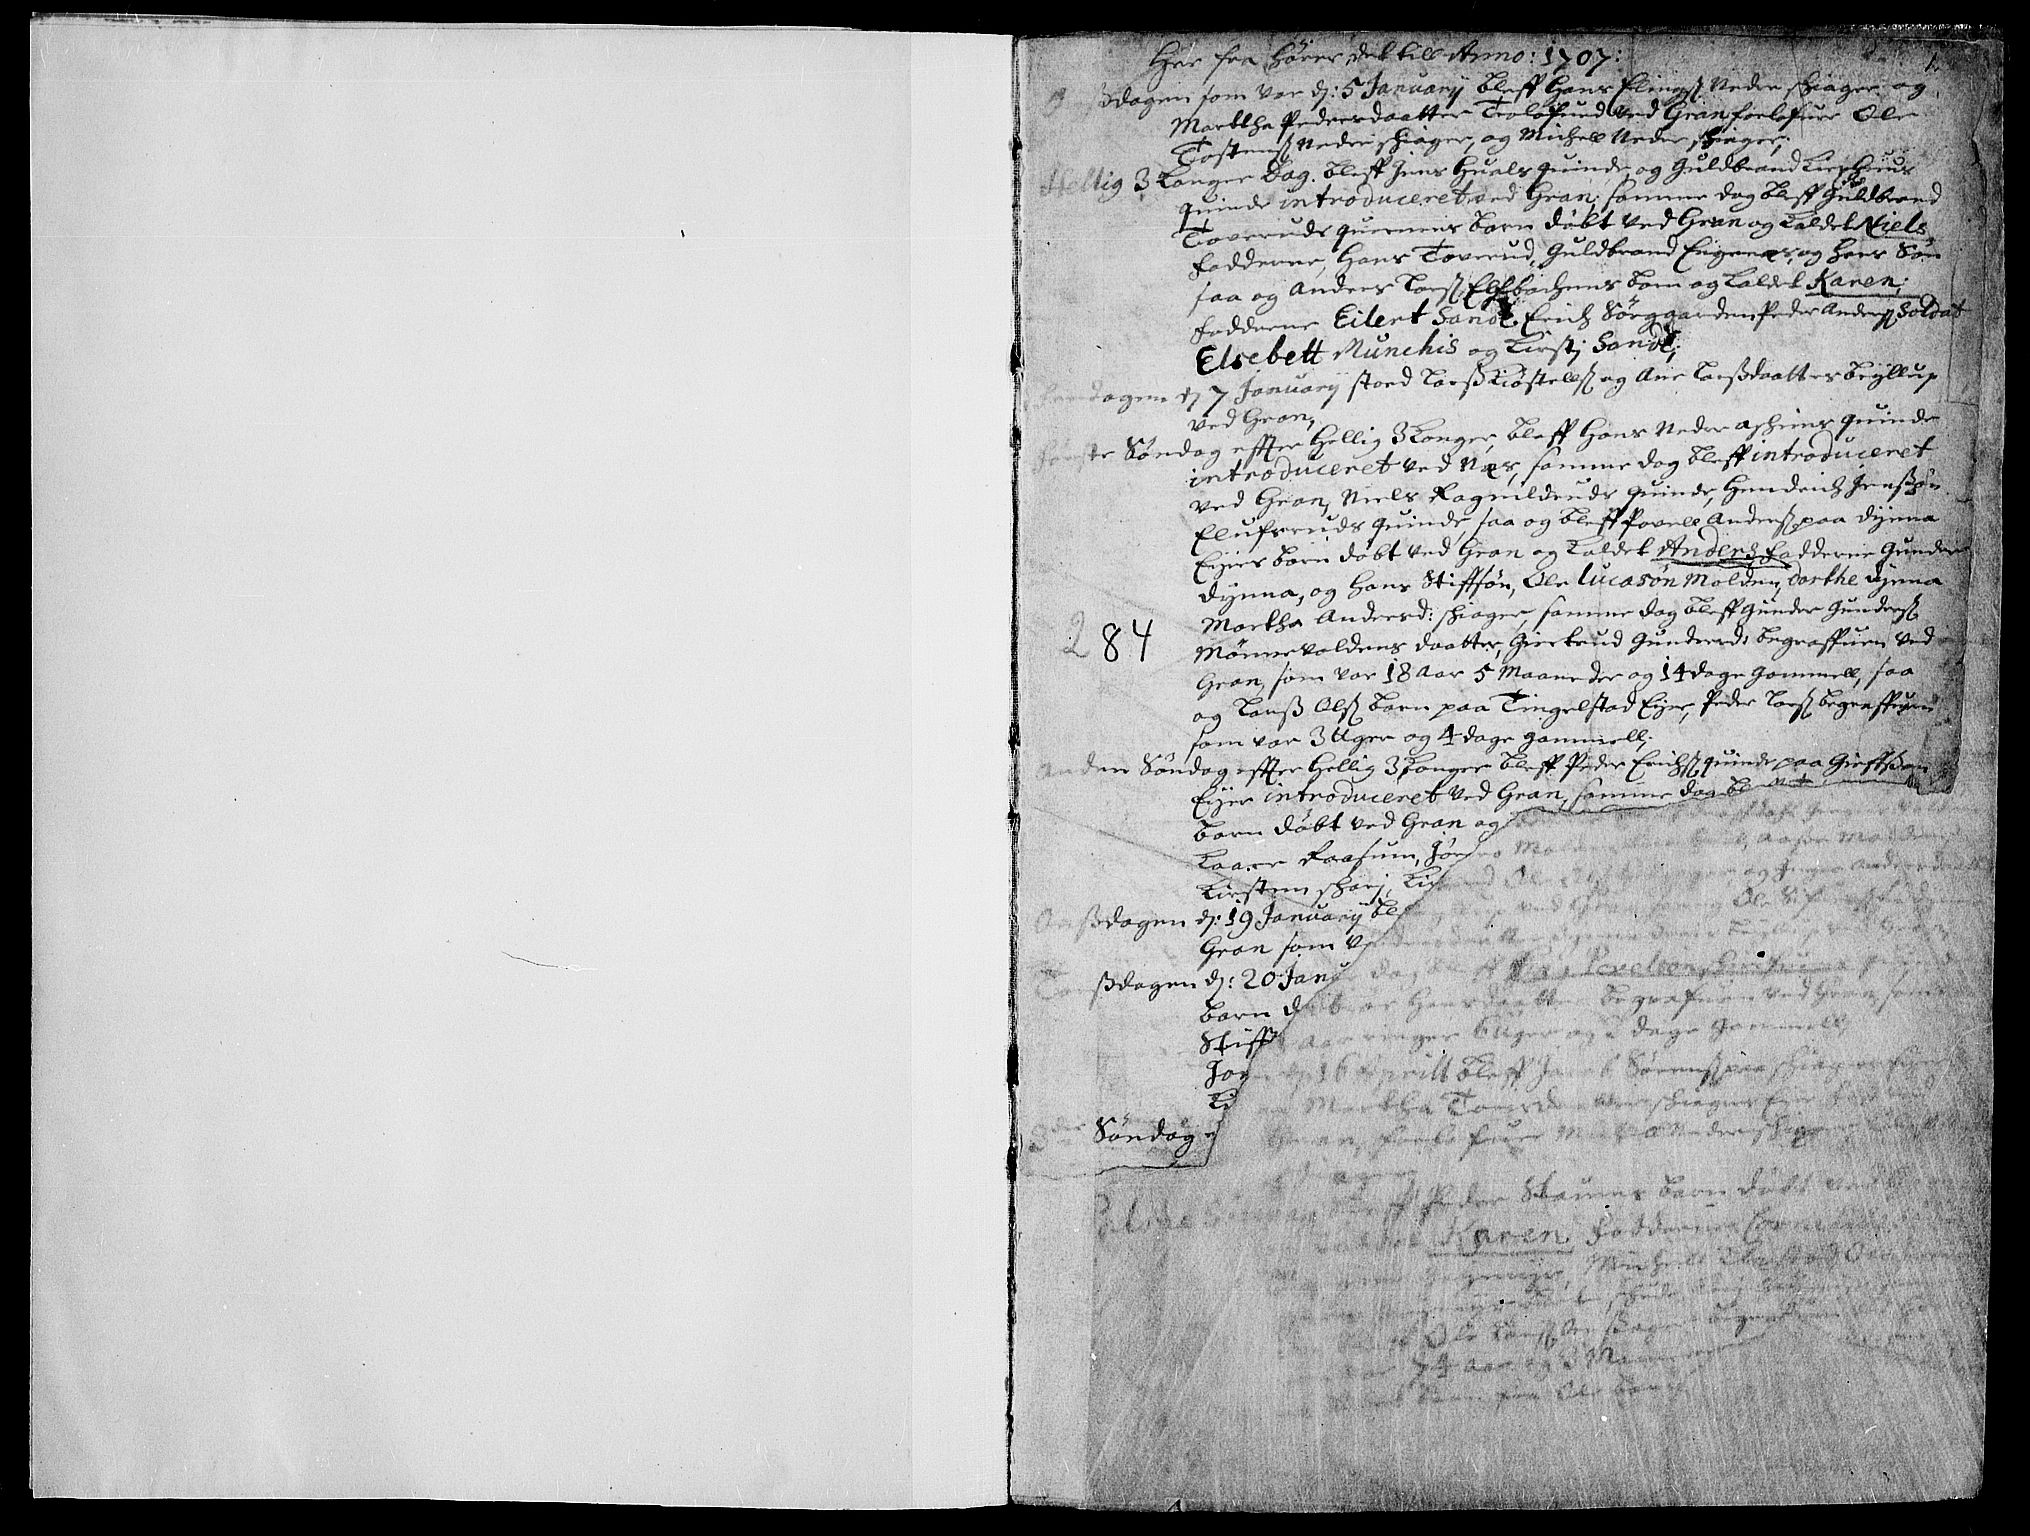 SAH, Gran prestekontor, Parish register (official) no. 1, 1707-1731, p. 1